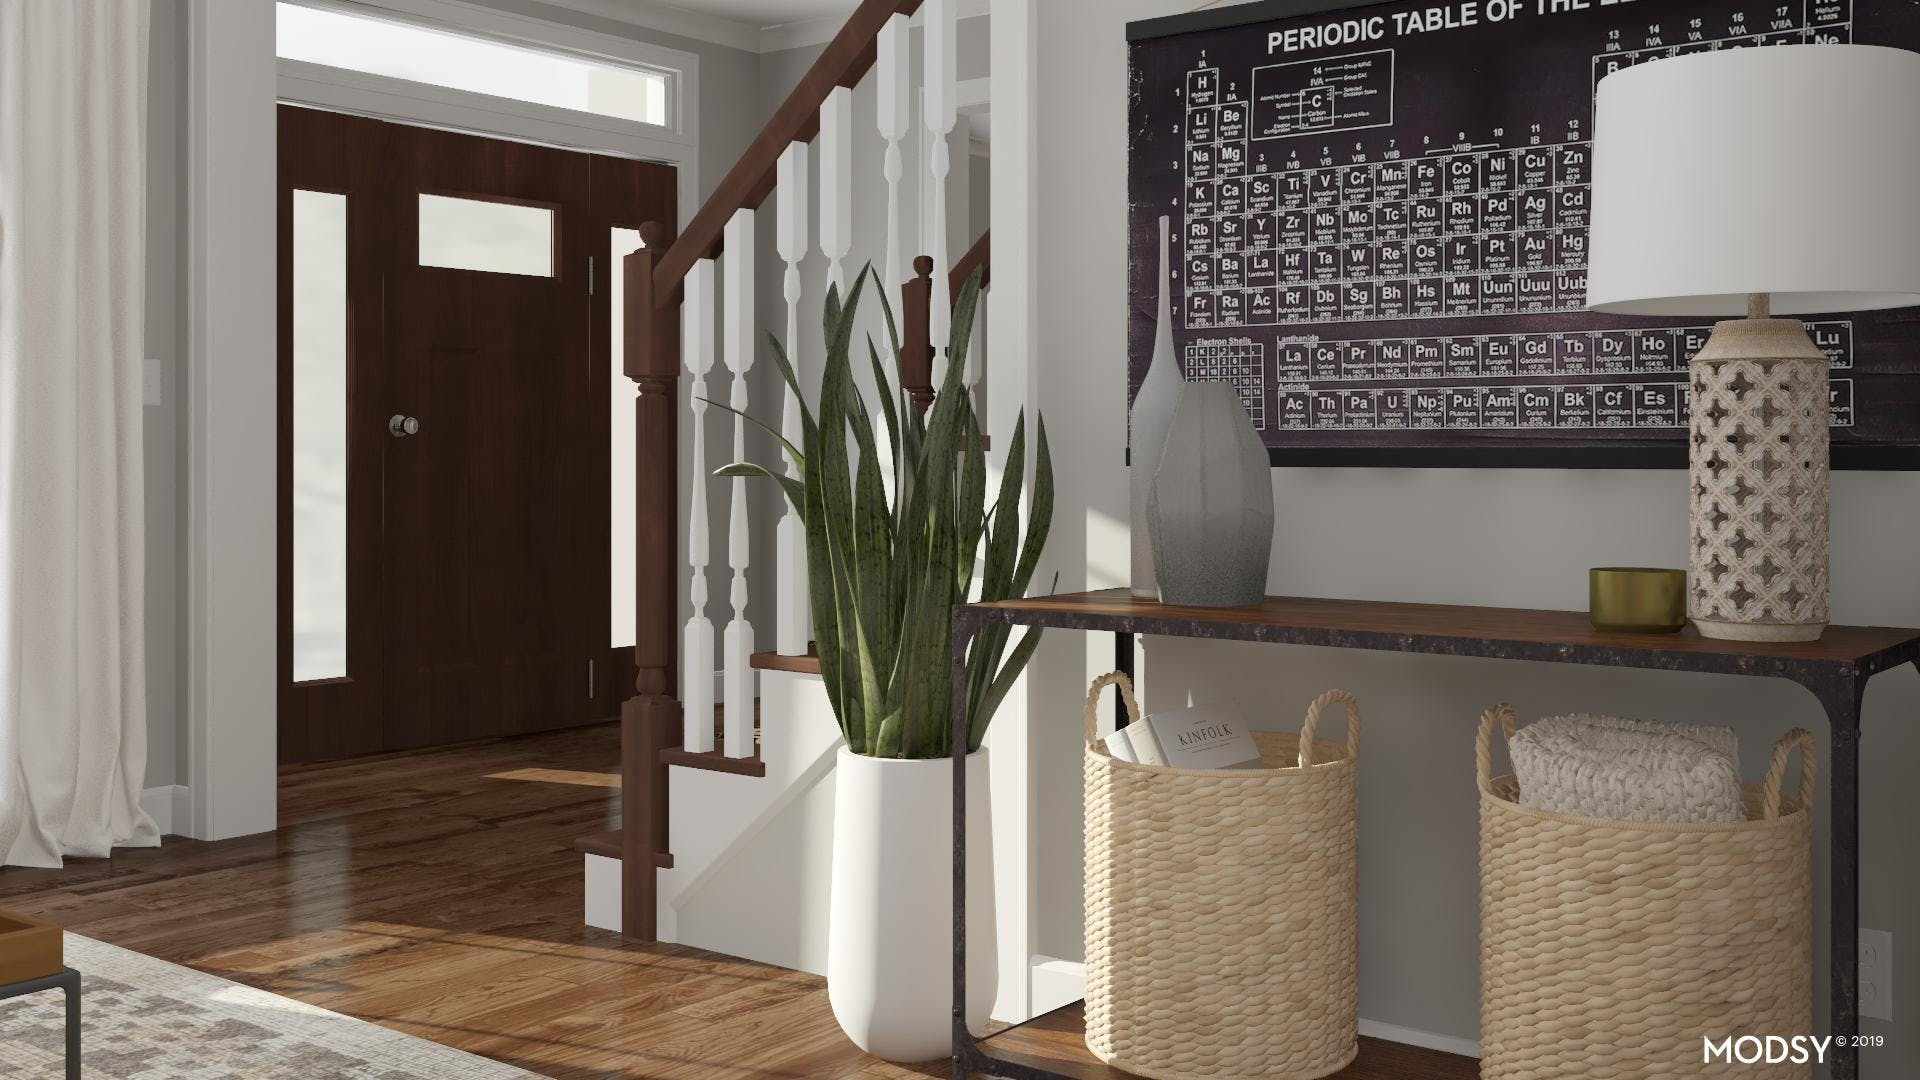 A Photo-Worthy Living Room Console Table